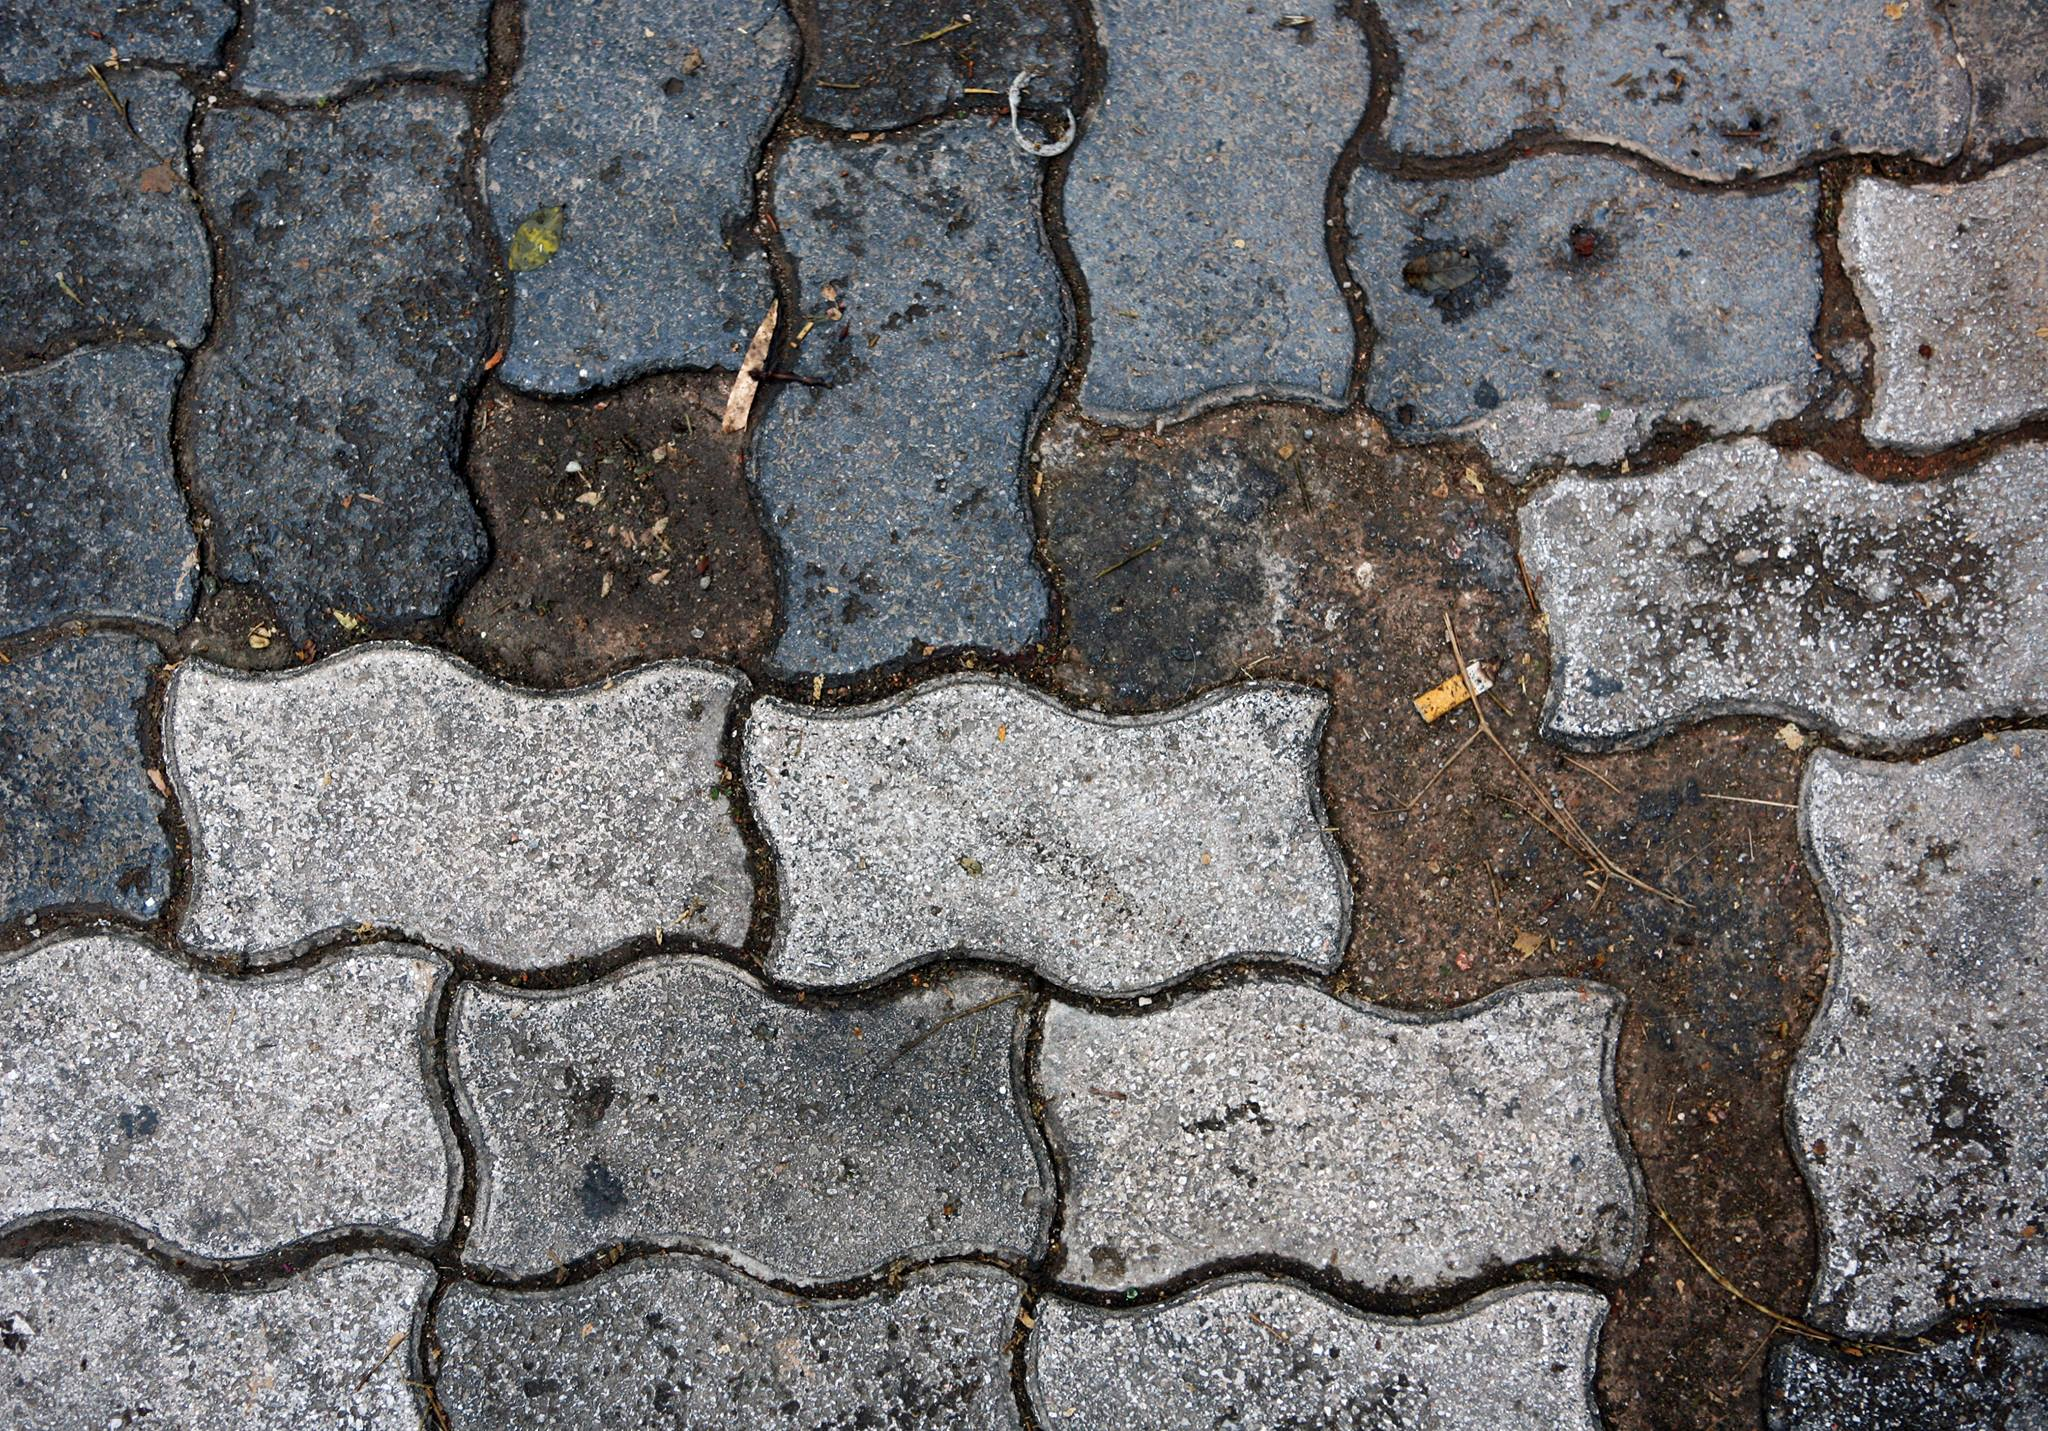 Under the paving stones, the river